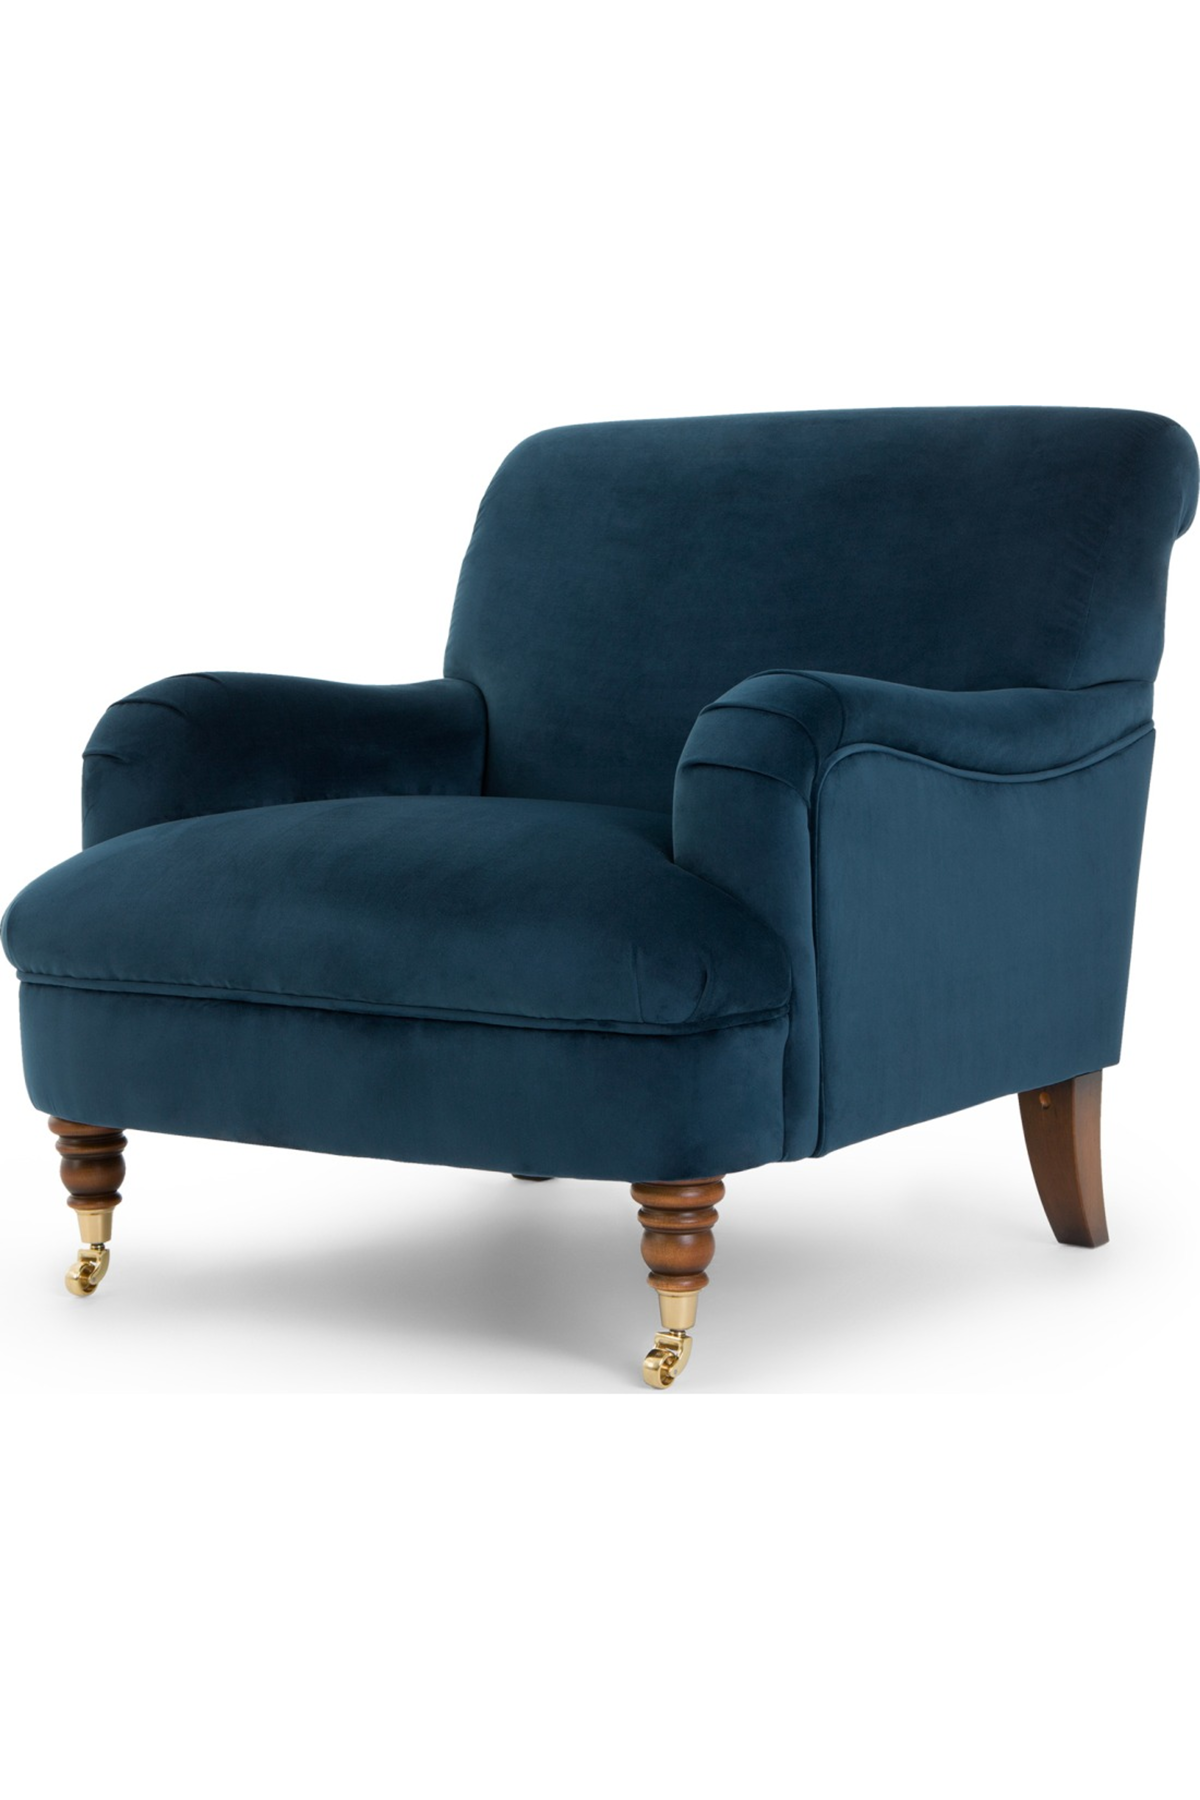 Best About The House Accent Armchair Midnight Blue Velvet With Images Lounge Chairs Living Room 400 x 300